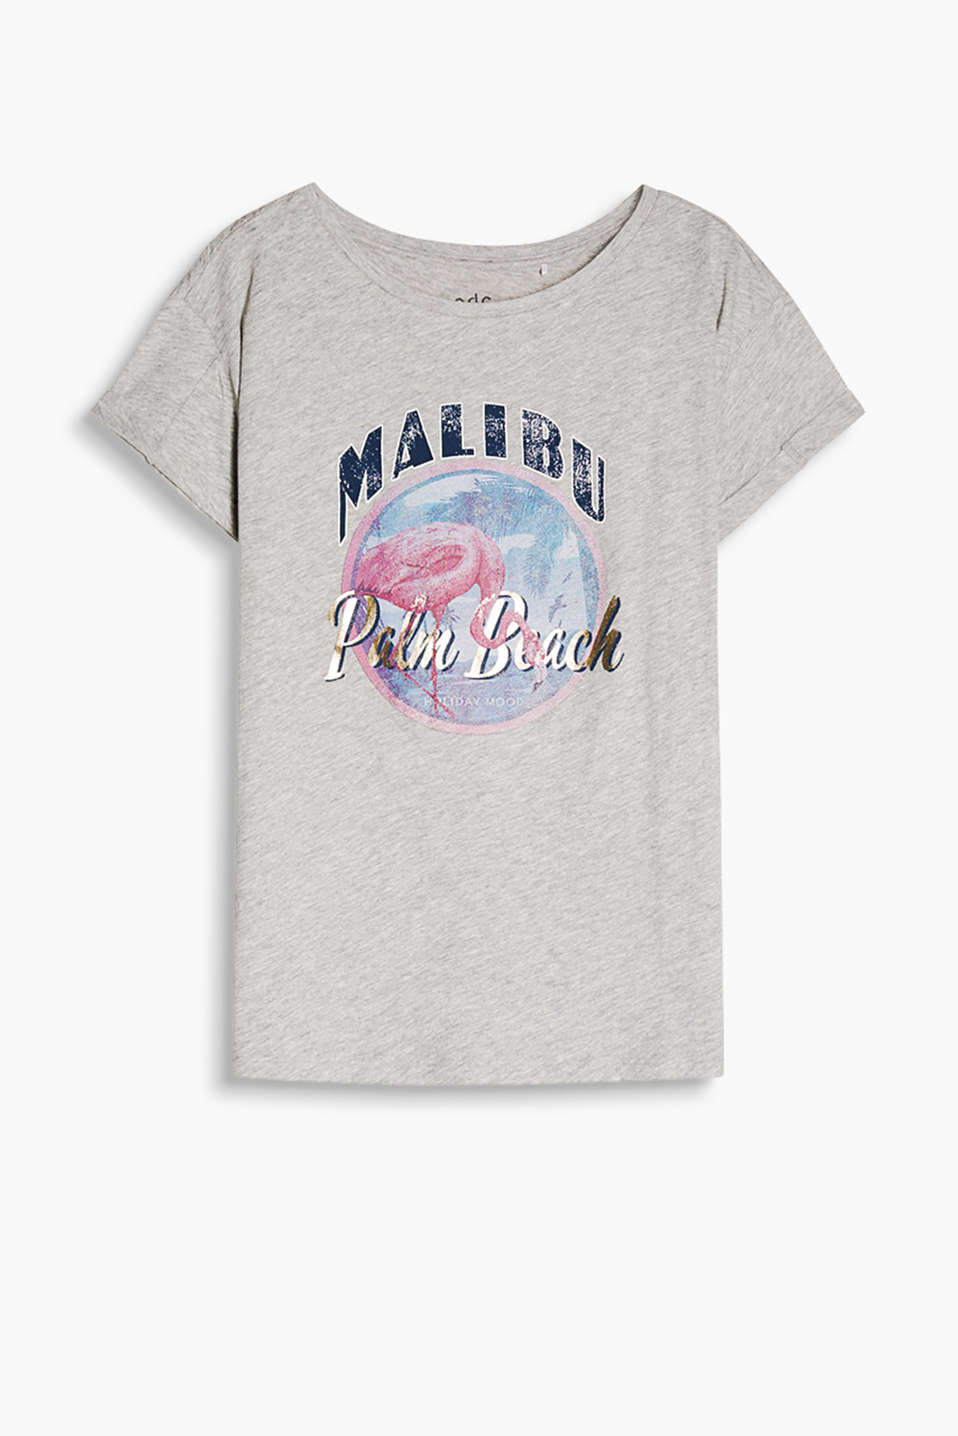 Summer Vibes! Grey melange T-shirt with a shiny print and ultra soft finish